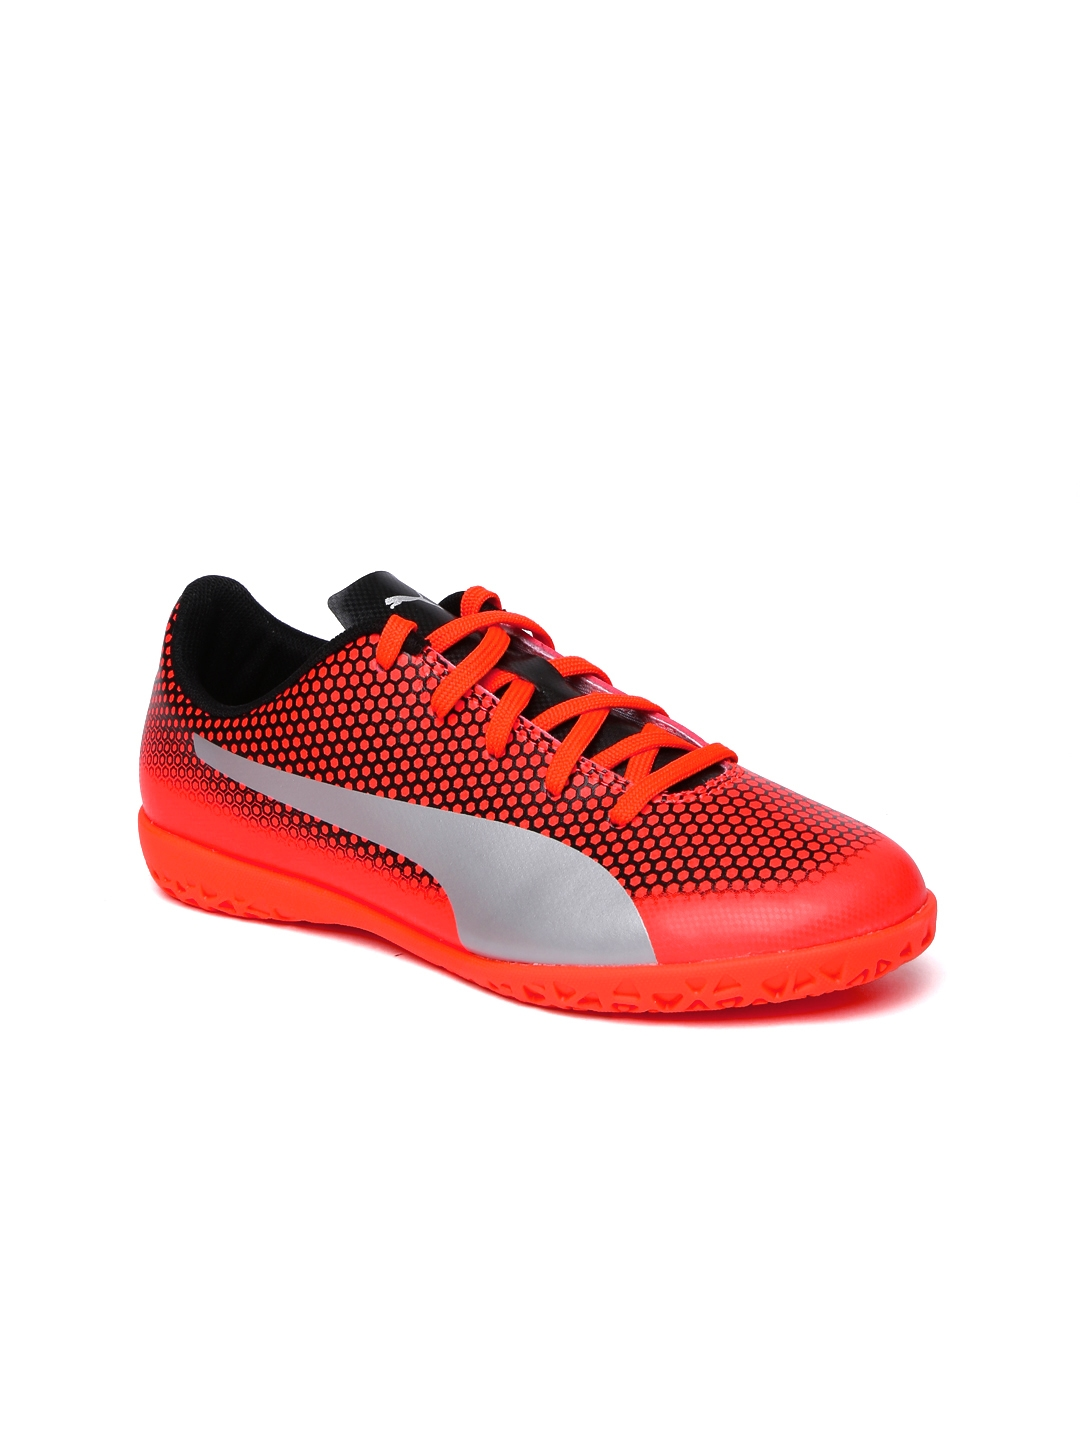 85e05df1a1c3 Buy PUMA Boys Red Printed Spirit Indoor Training Shoes - Sports ...